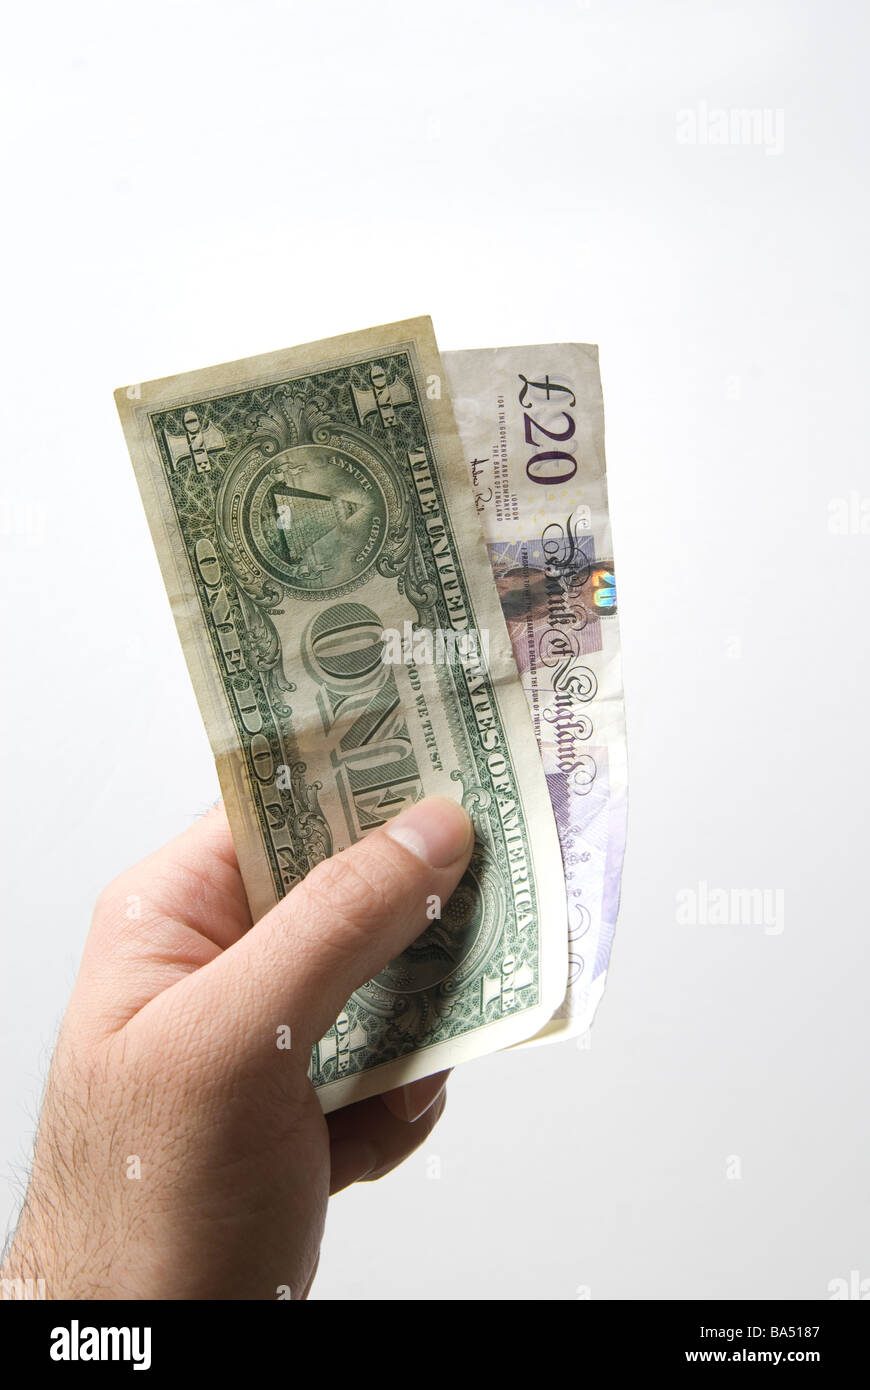 Hand holding an American one dollar bill and a twenty pounds British banknote - Stock Image